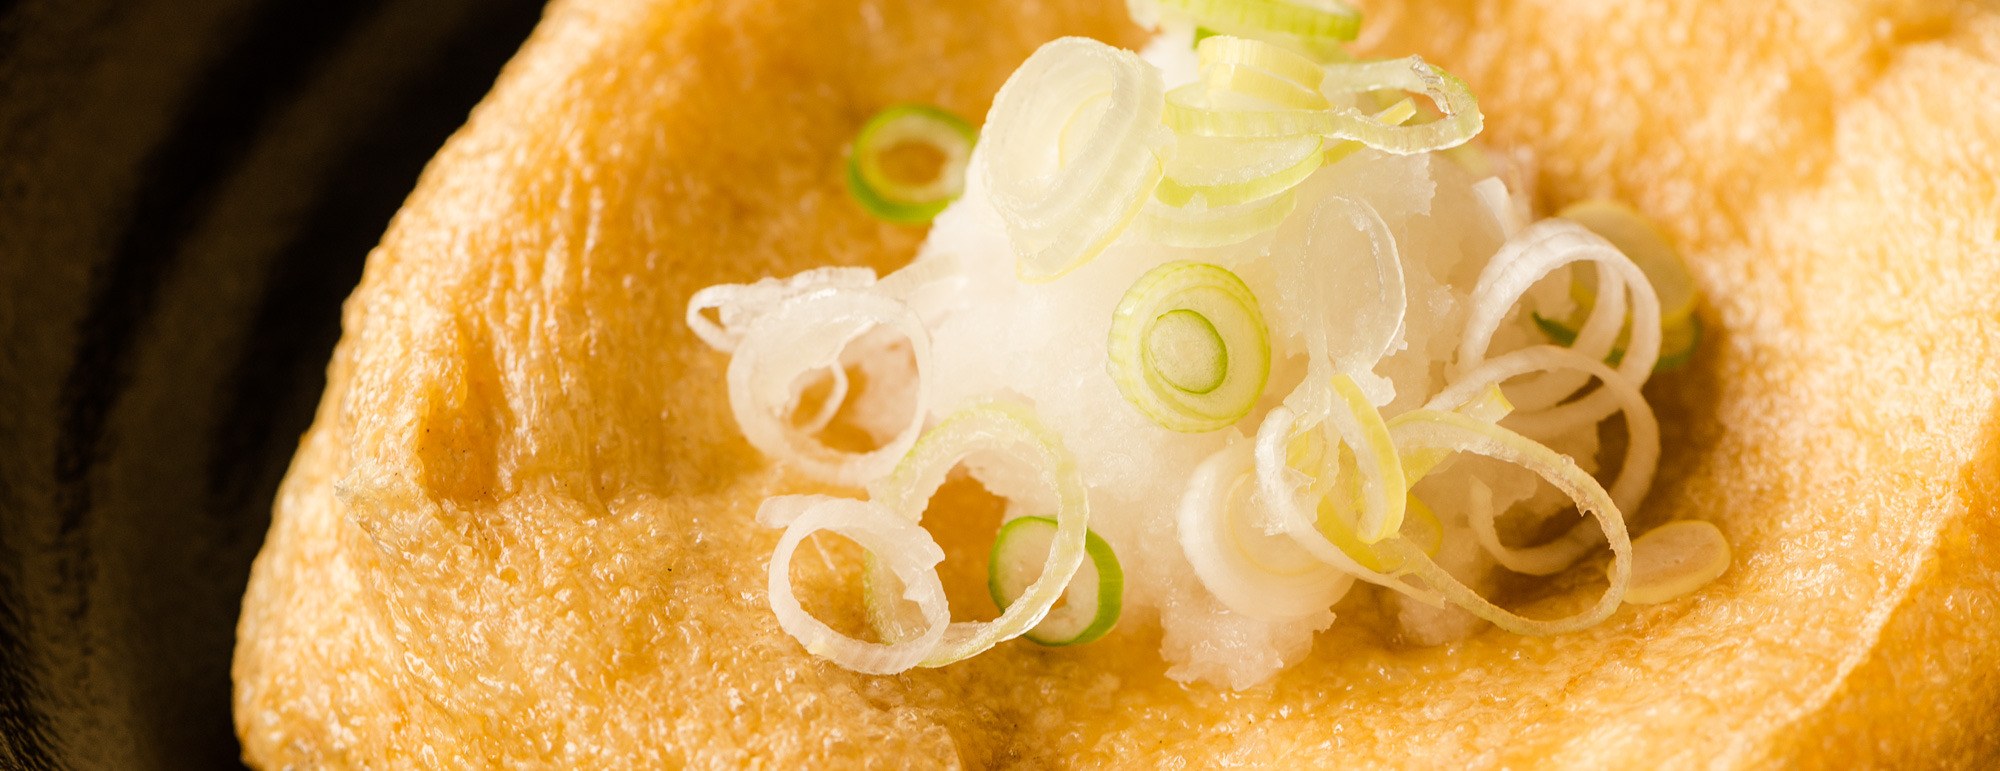 Takeda deep-fried tofu's photo